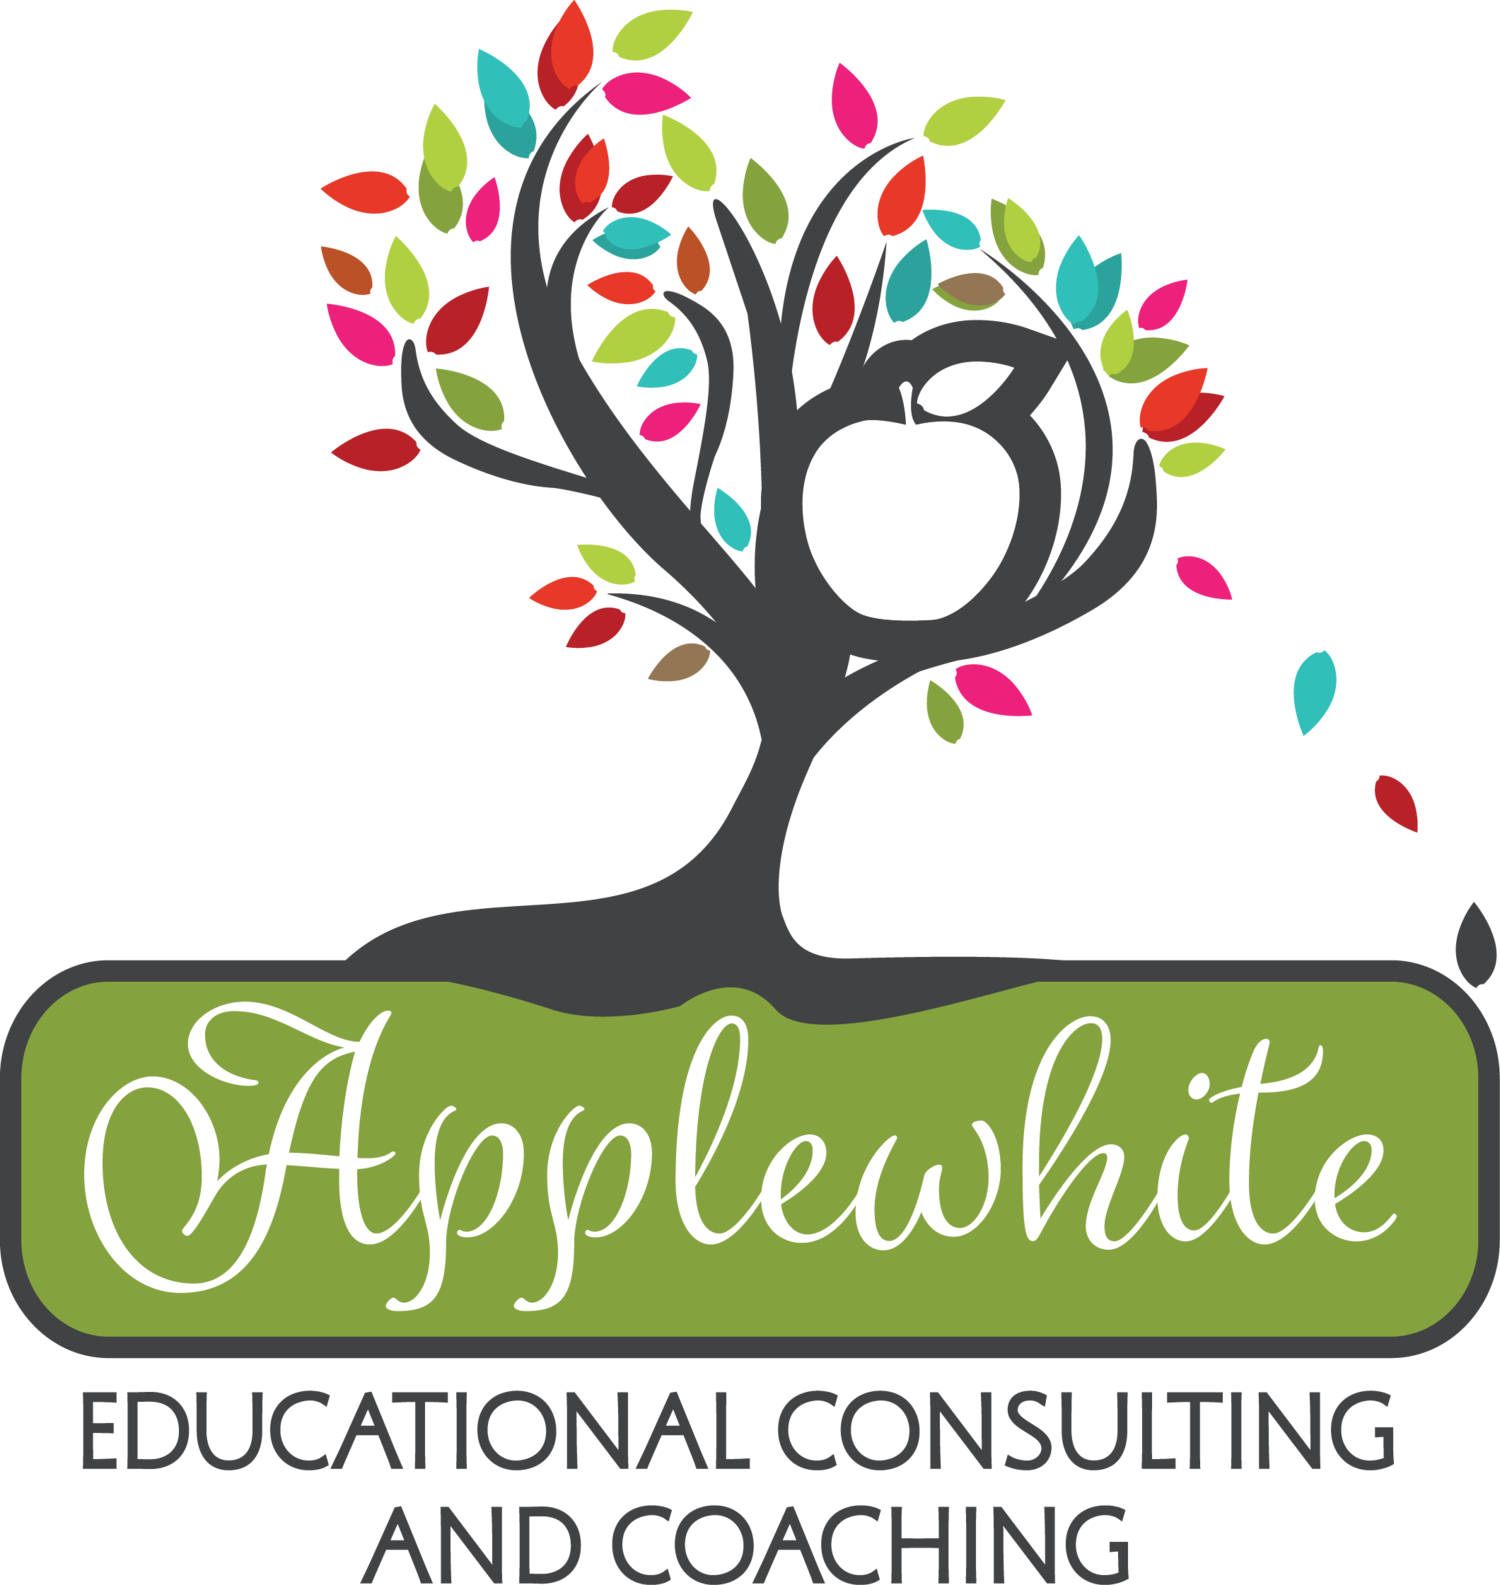 Psychology clipart student counseling. Psychological services applewhite educational